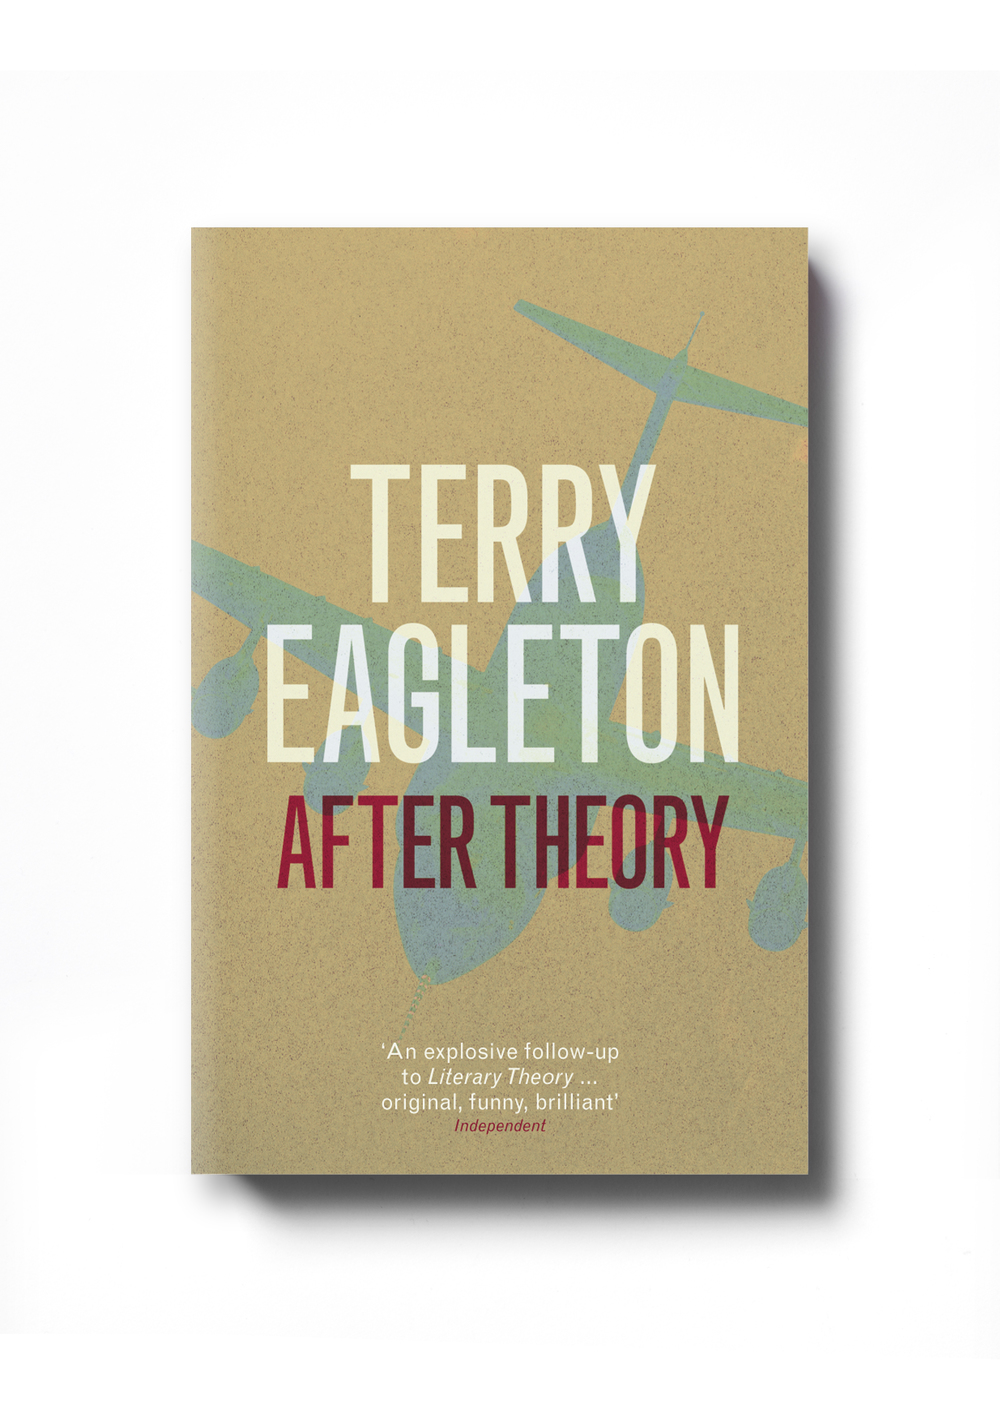 After Theory by Terry Eagleton - Design: Jim Stoddart